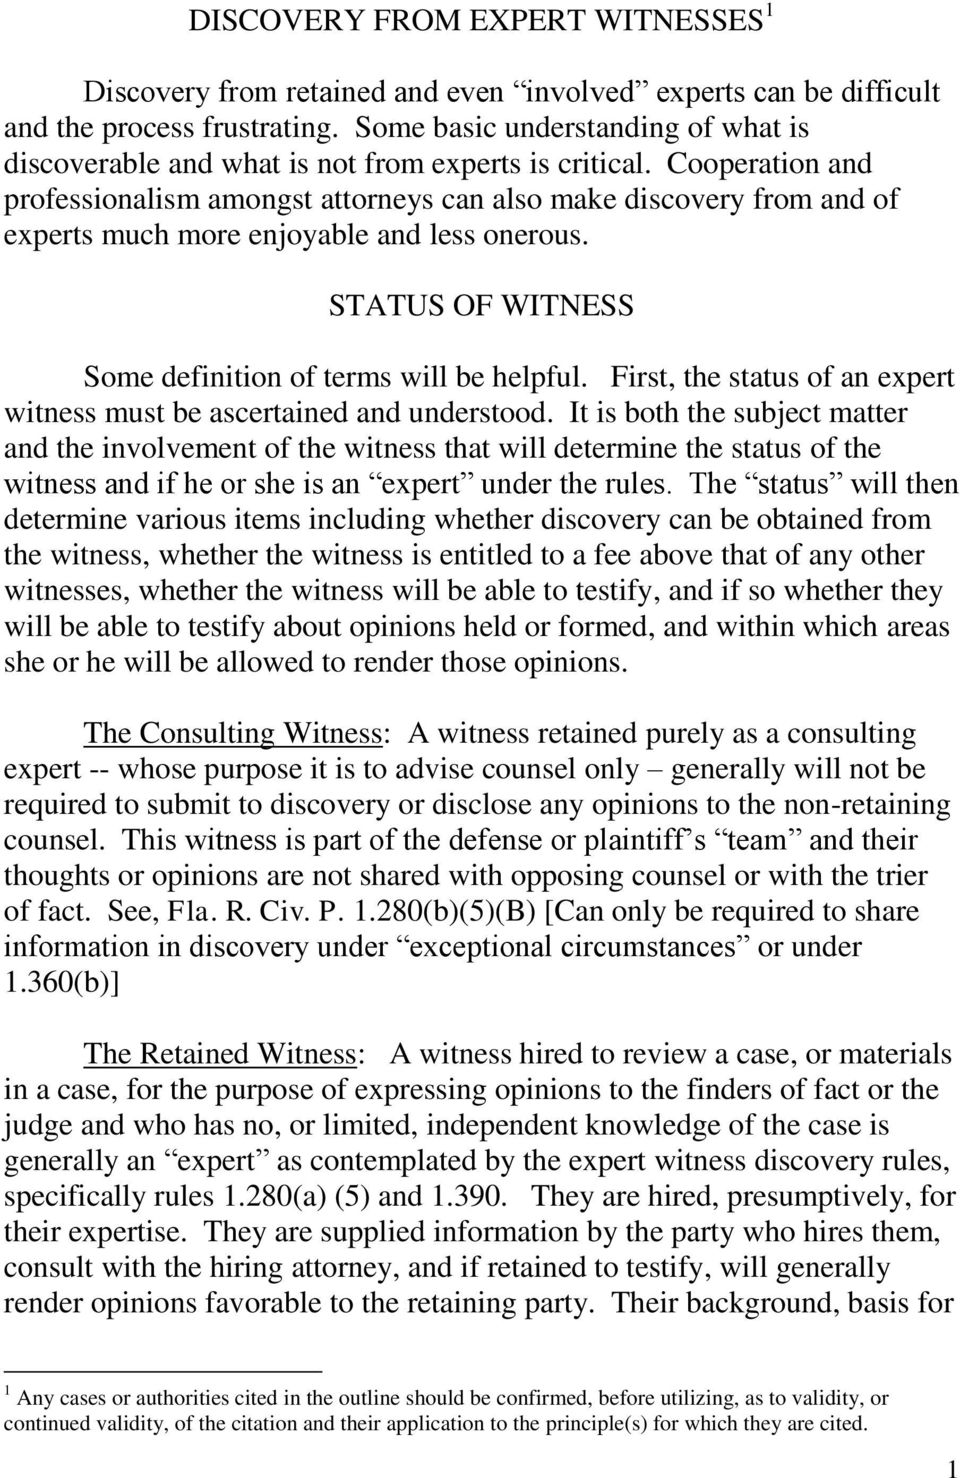 Cooperation and professionalism amongst attorneys can also make discovery from and of experts much more enjoyable and less onerous. STATUS OF WITNESS Some definition of terms will be helpful.